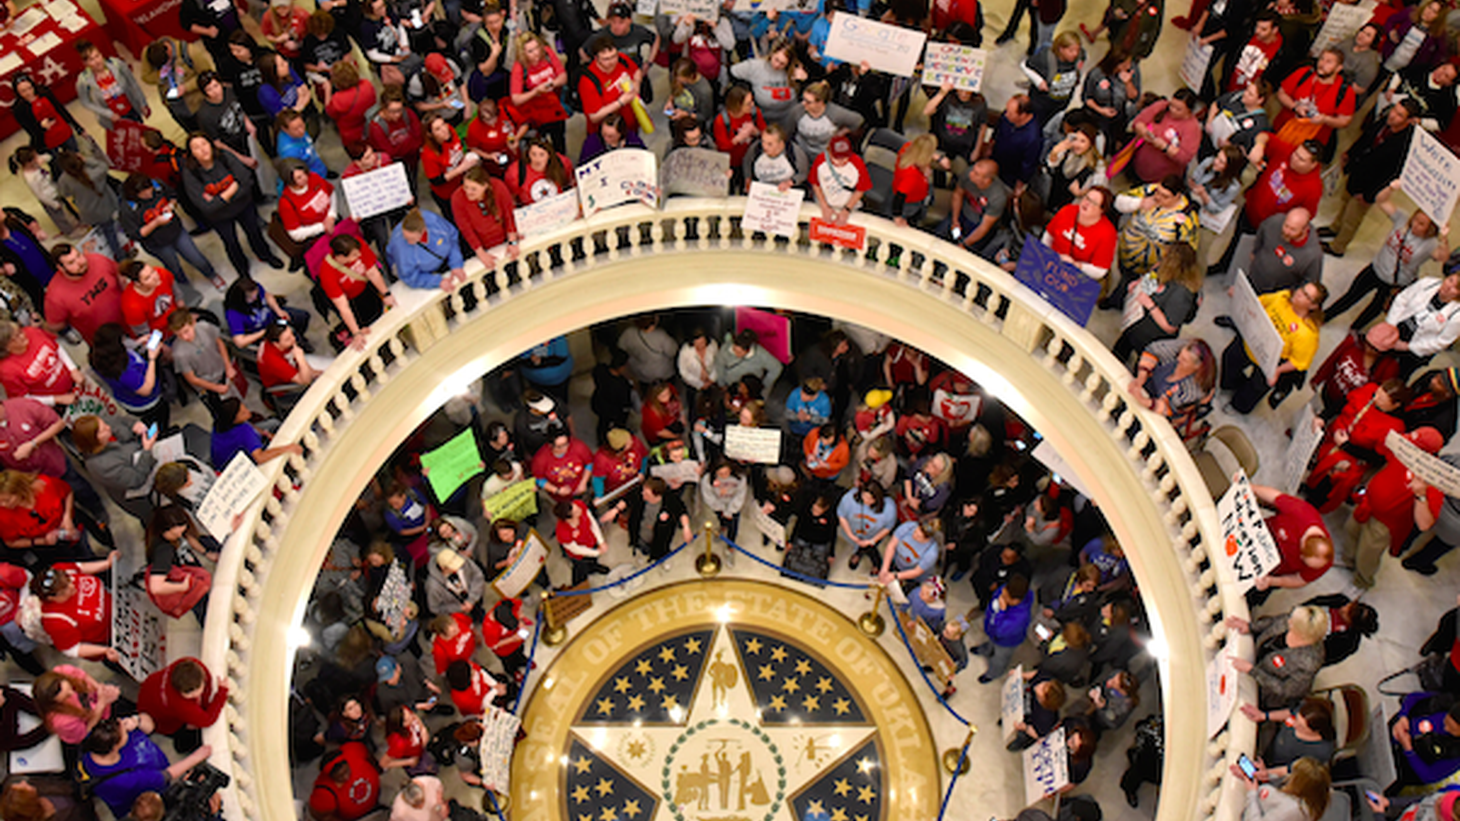 Teachers are striking for a second day in Oklahoma, where years of budget cuts have forced one in five schools to operate on a four-day week. In Kentucky, thousands flooded the capital over changes to their pension plans yesterday.